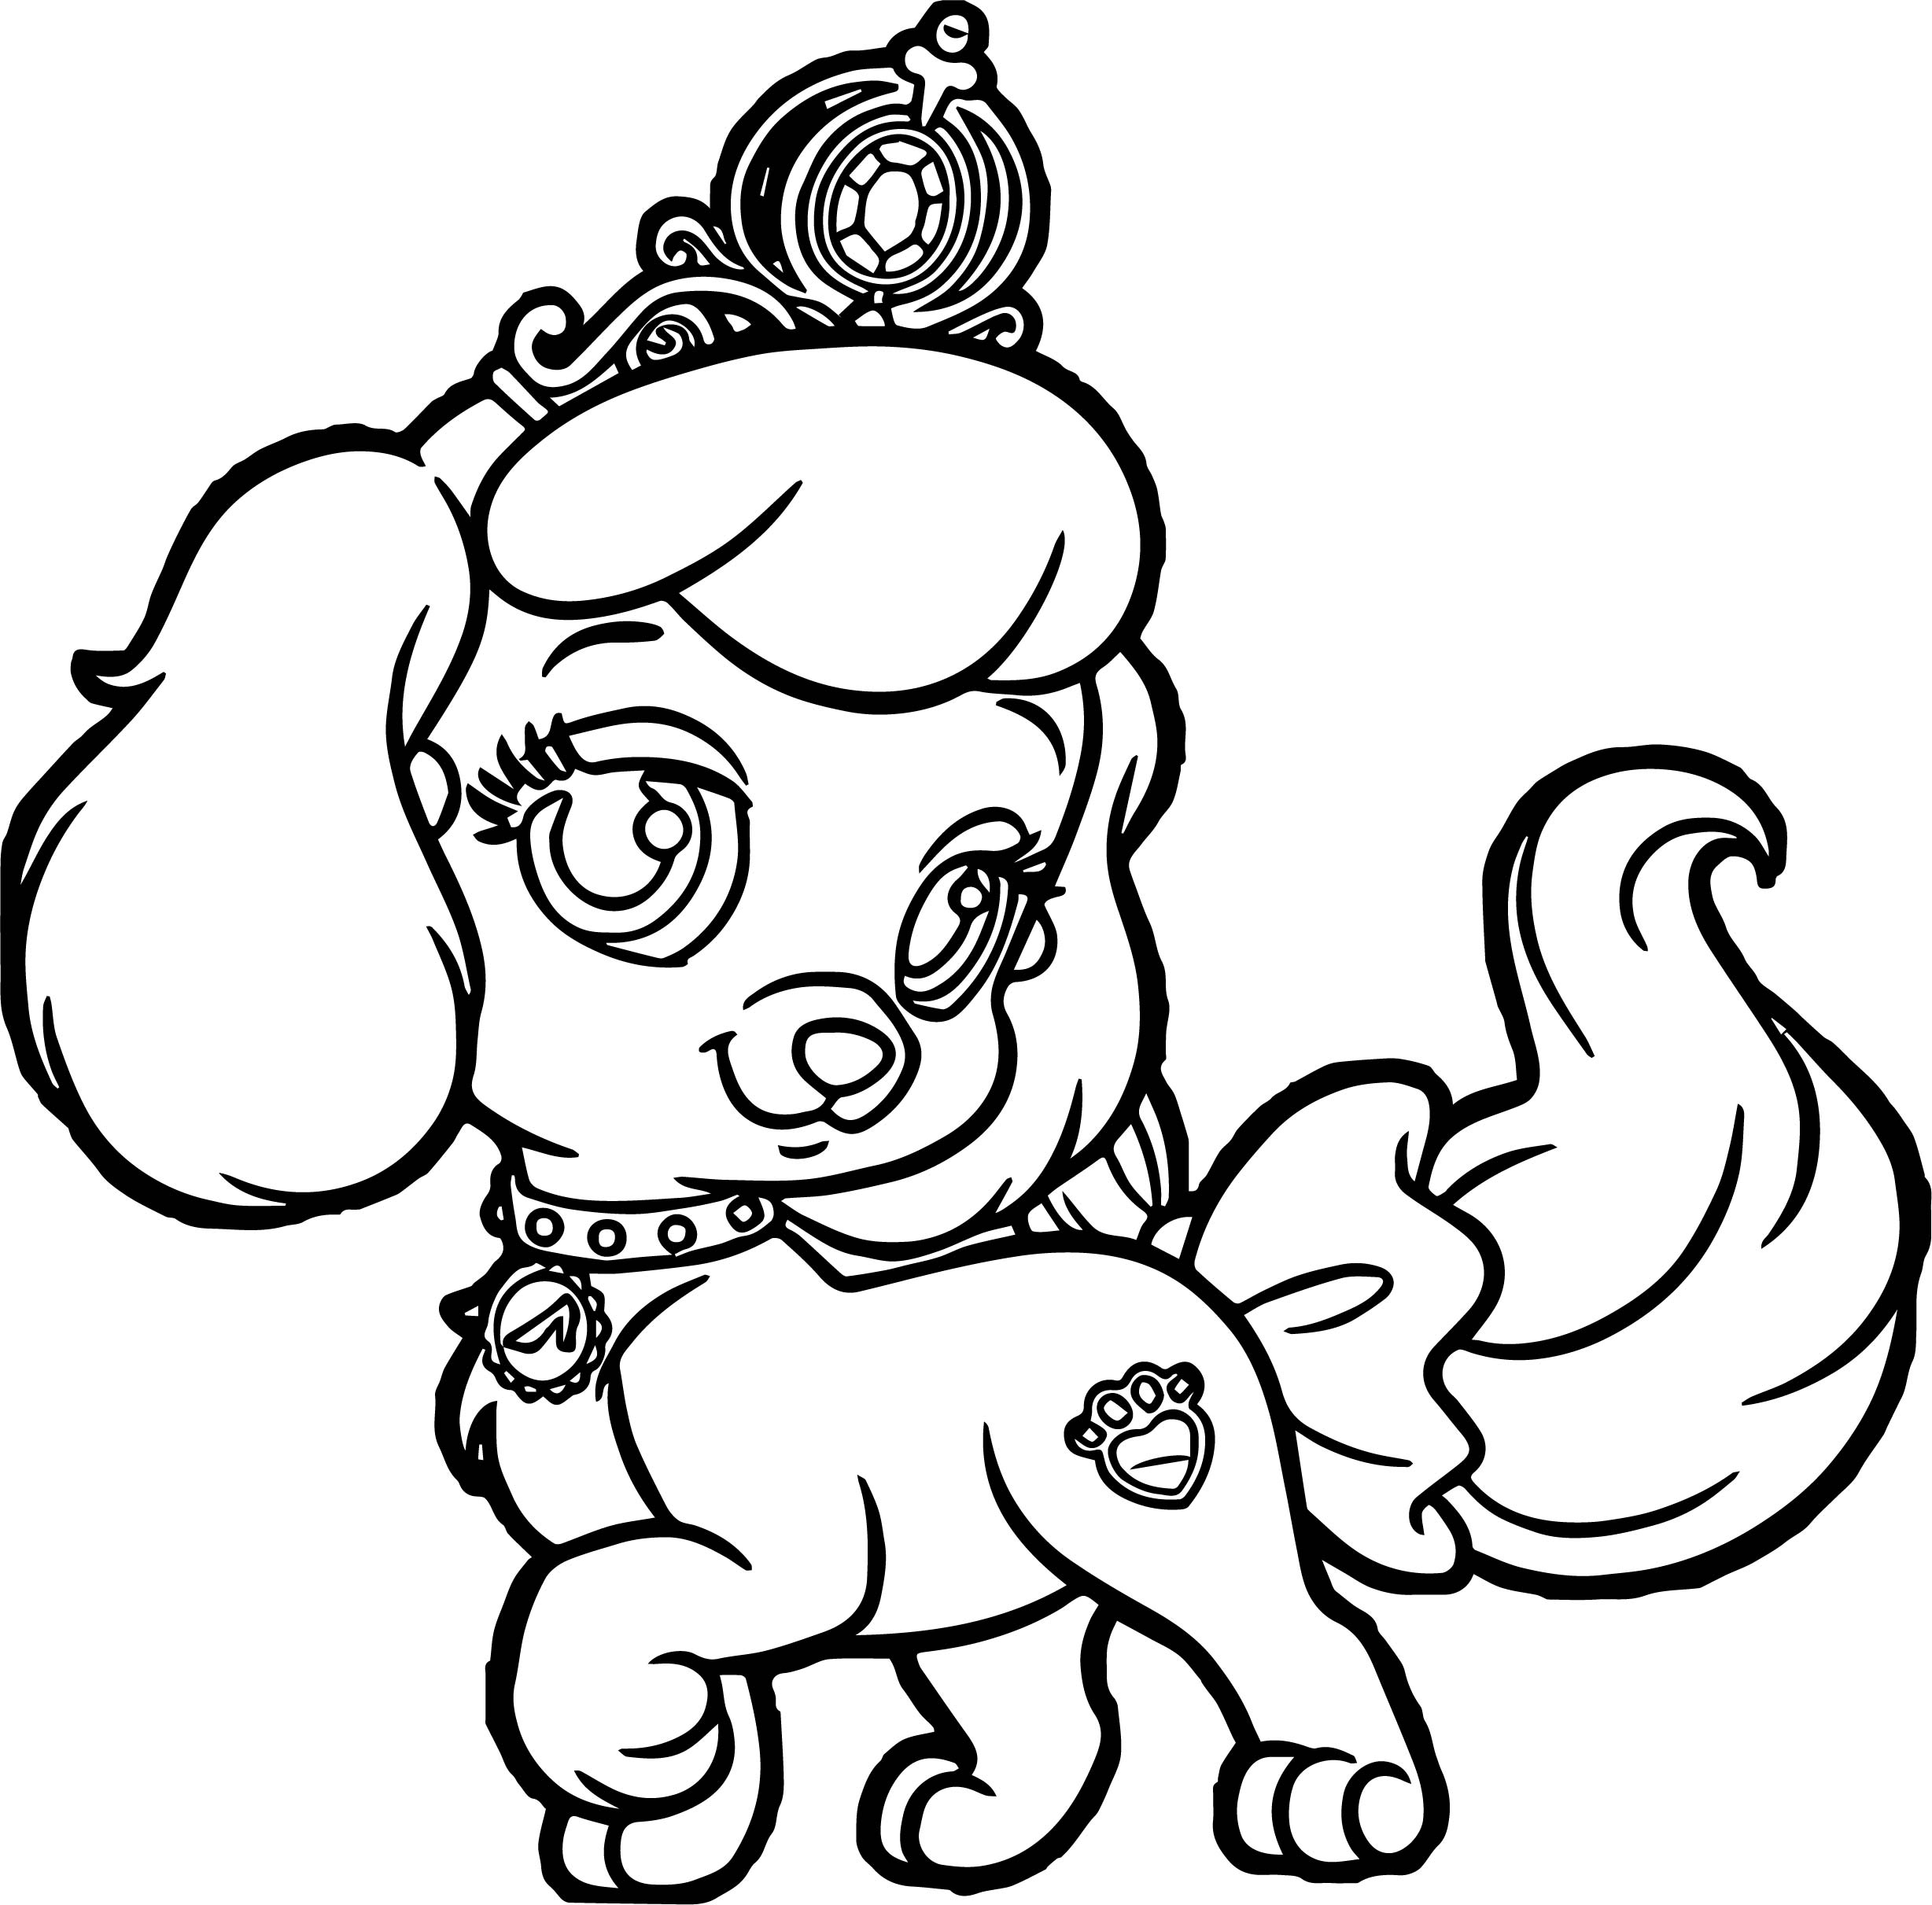 Girl Pumpkin Pup Puppy Dog Coloring Page Wecoloringpage